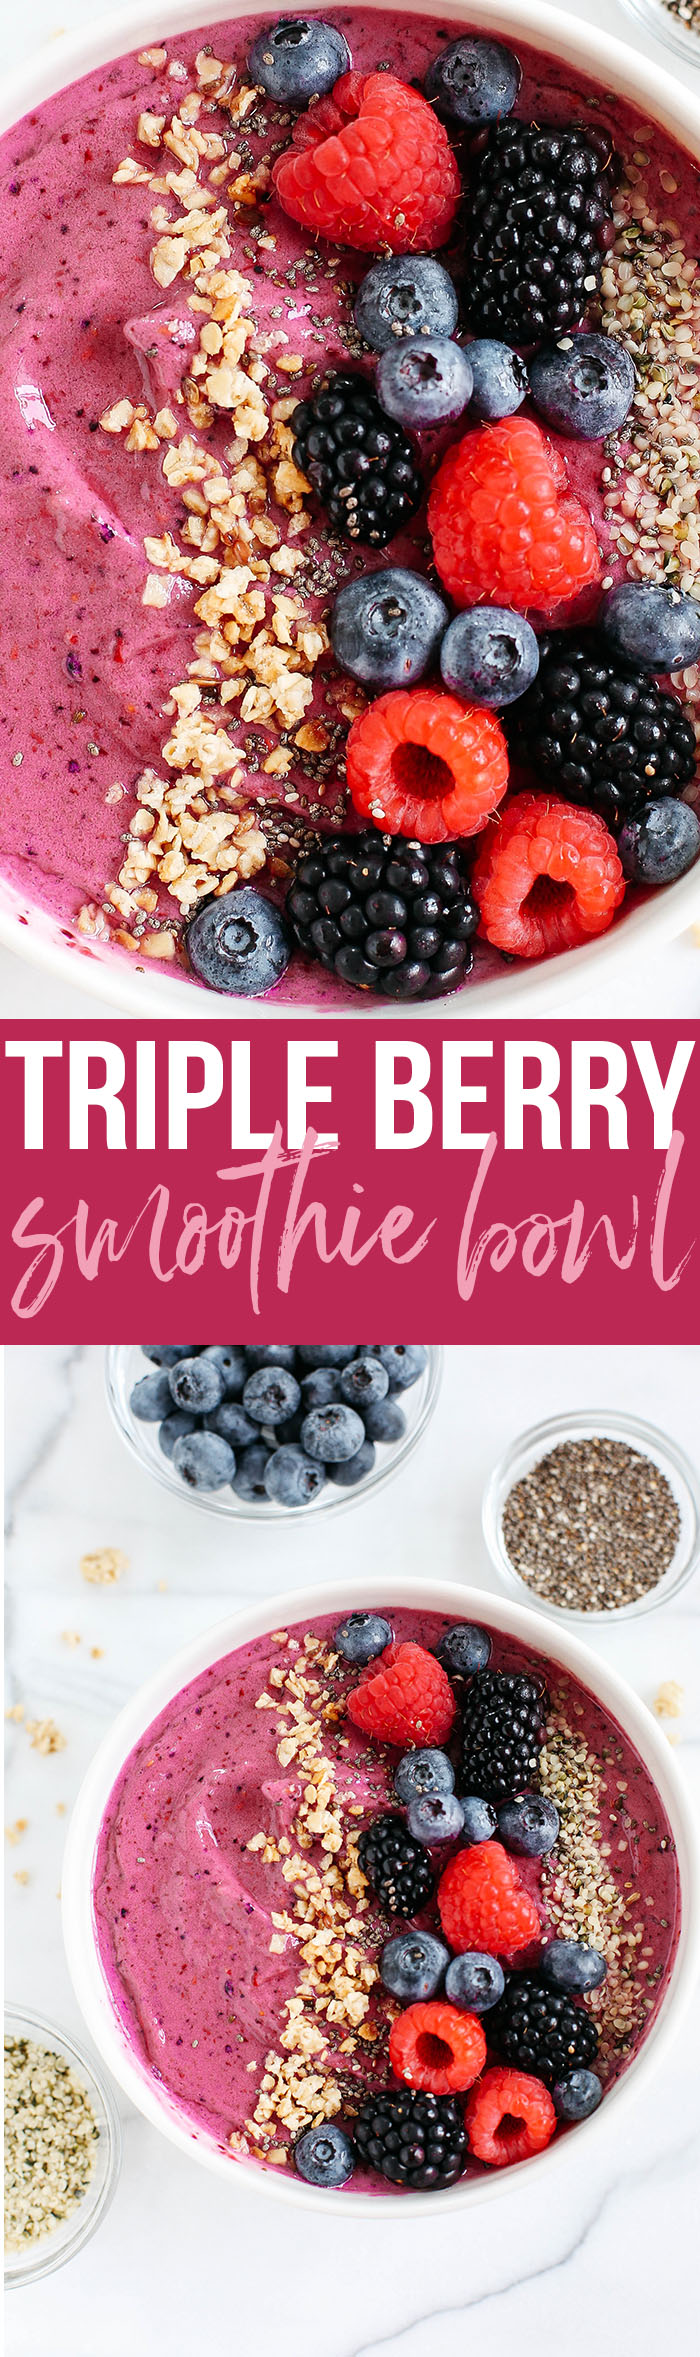 This Triple Berry Smoothie Bowl is creamy, delicious and super EASY to make with a variety of fun toppings and fresh fruit!